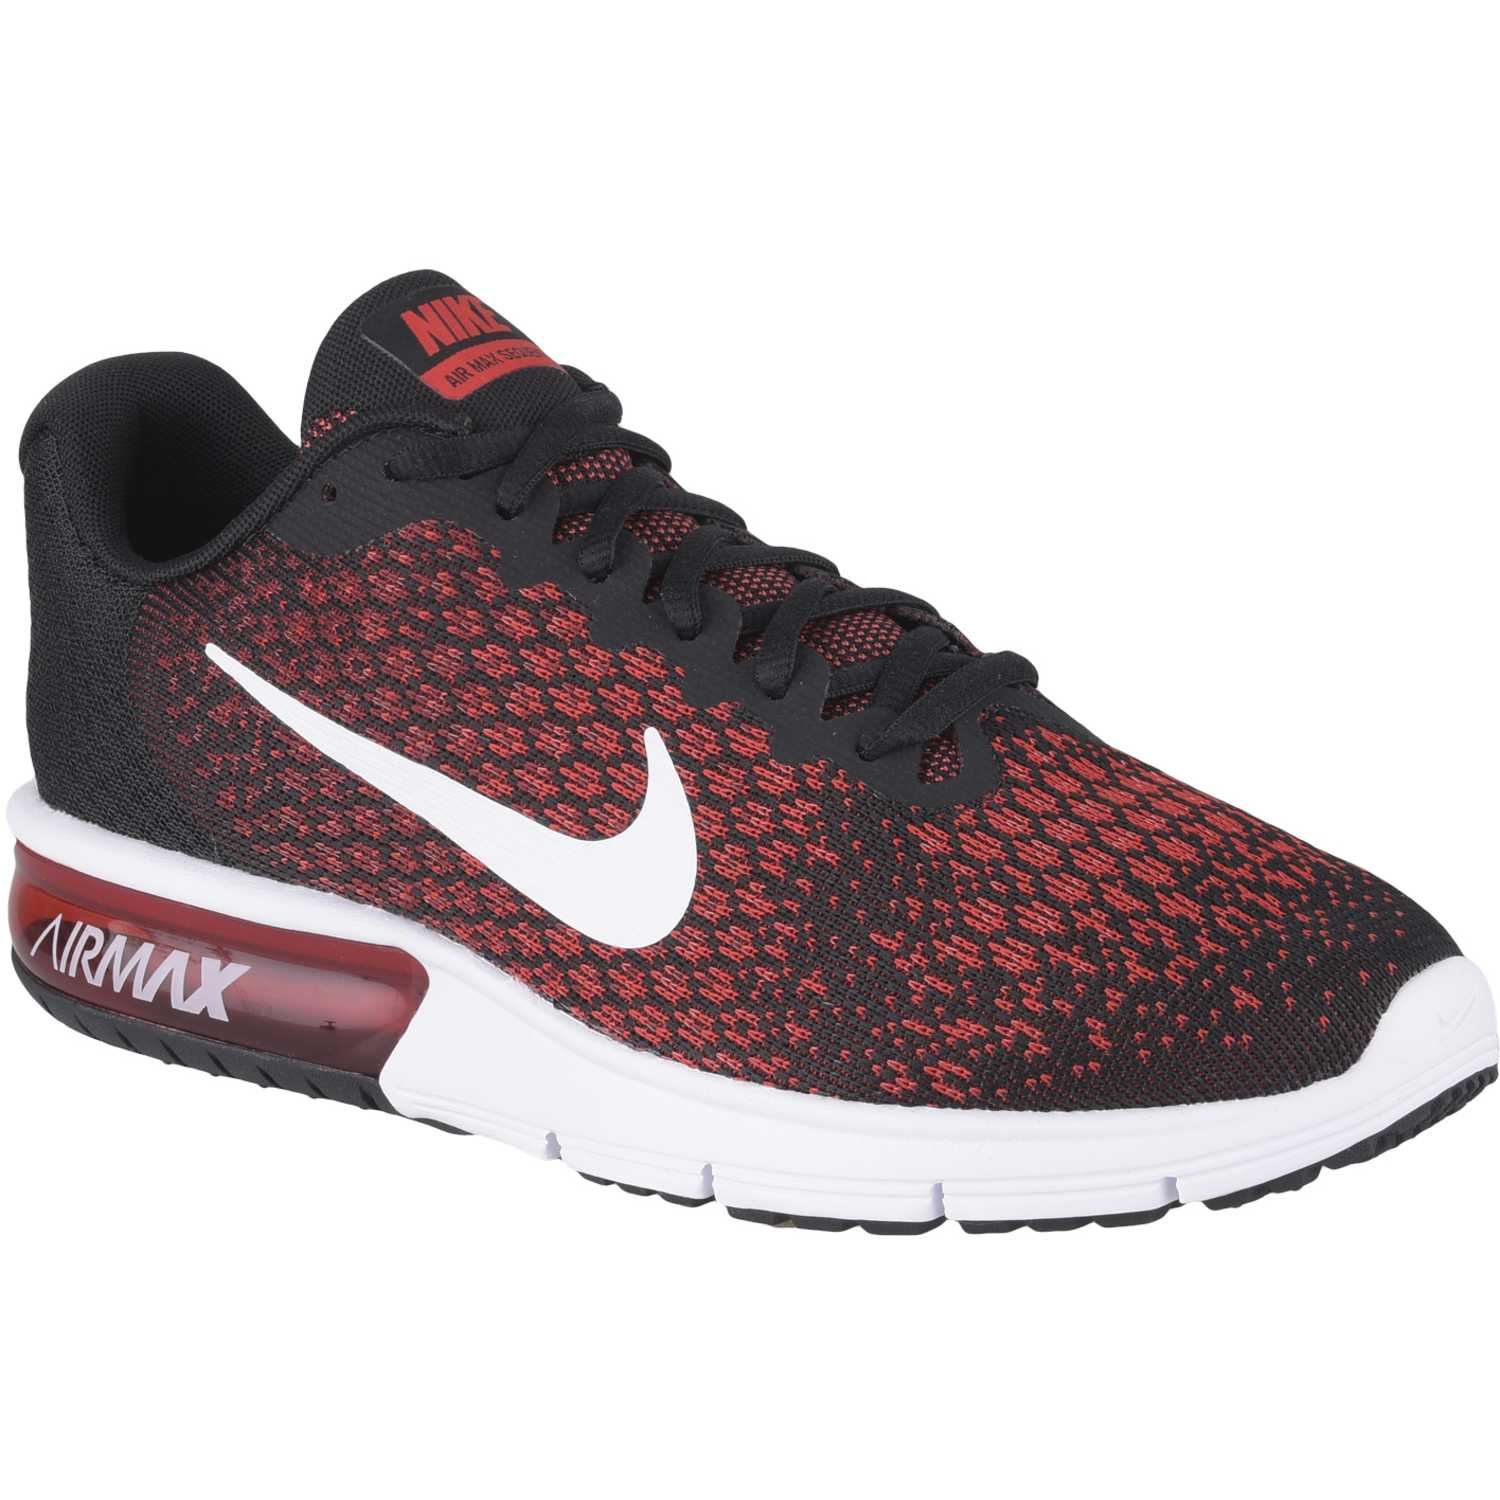 separation shoes 3508c 277f4 Zapatilla de Hombre Nike Negro / rojo air max sequent 2 | platanitos.com